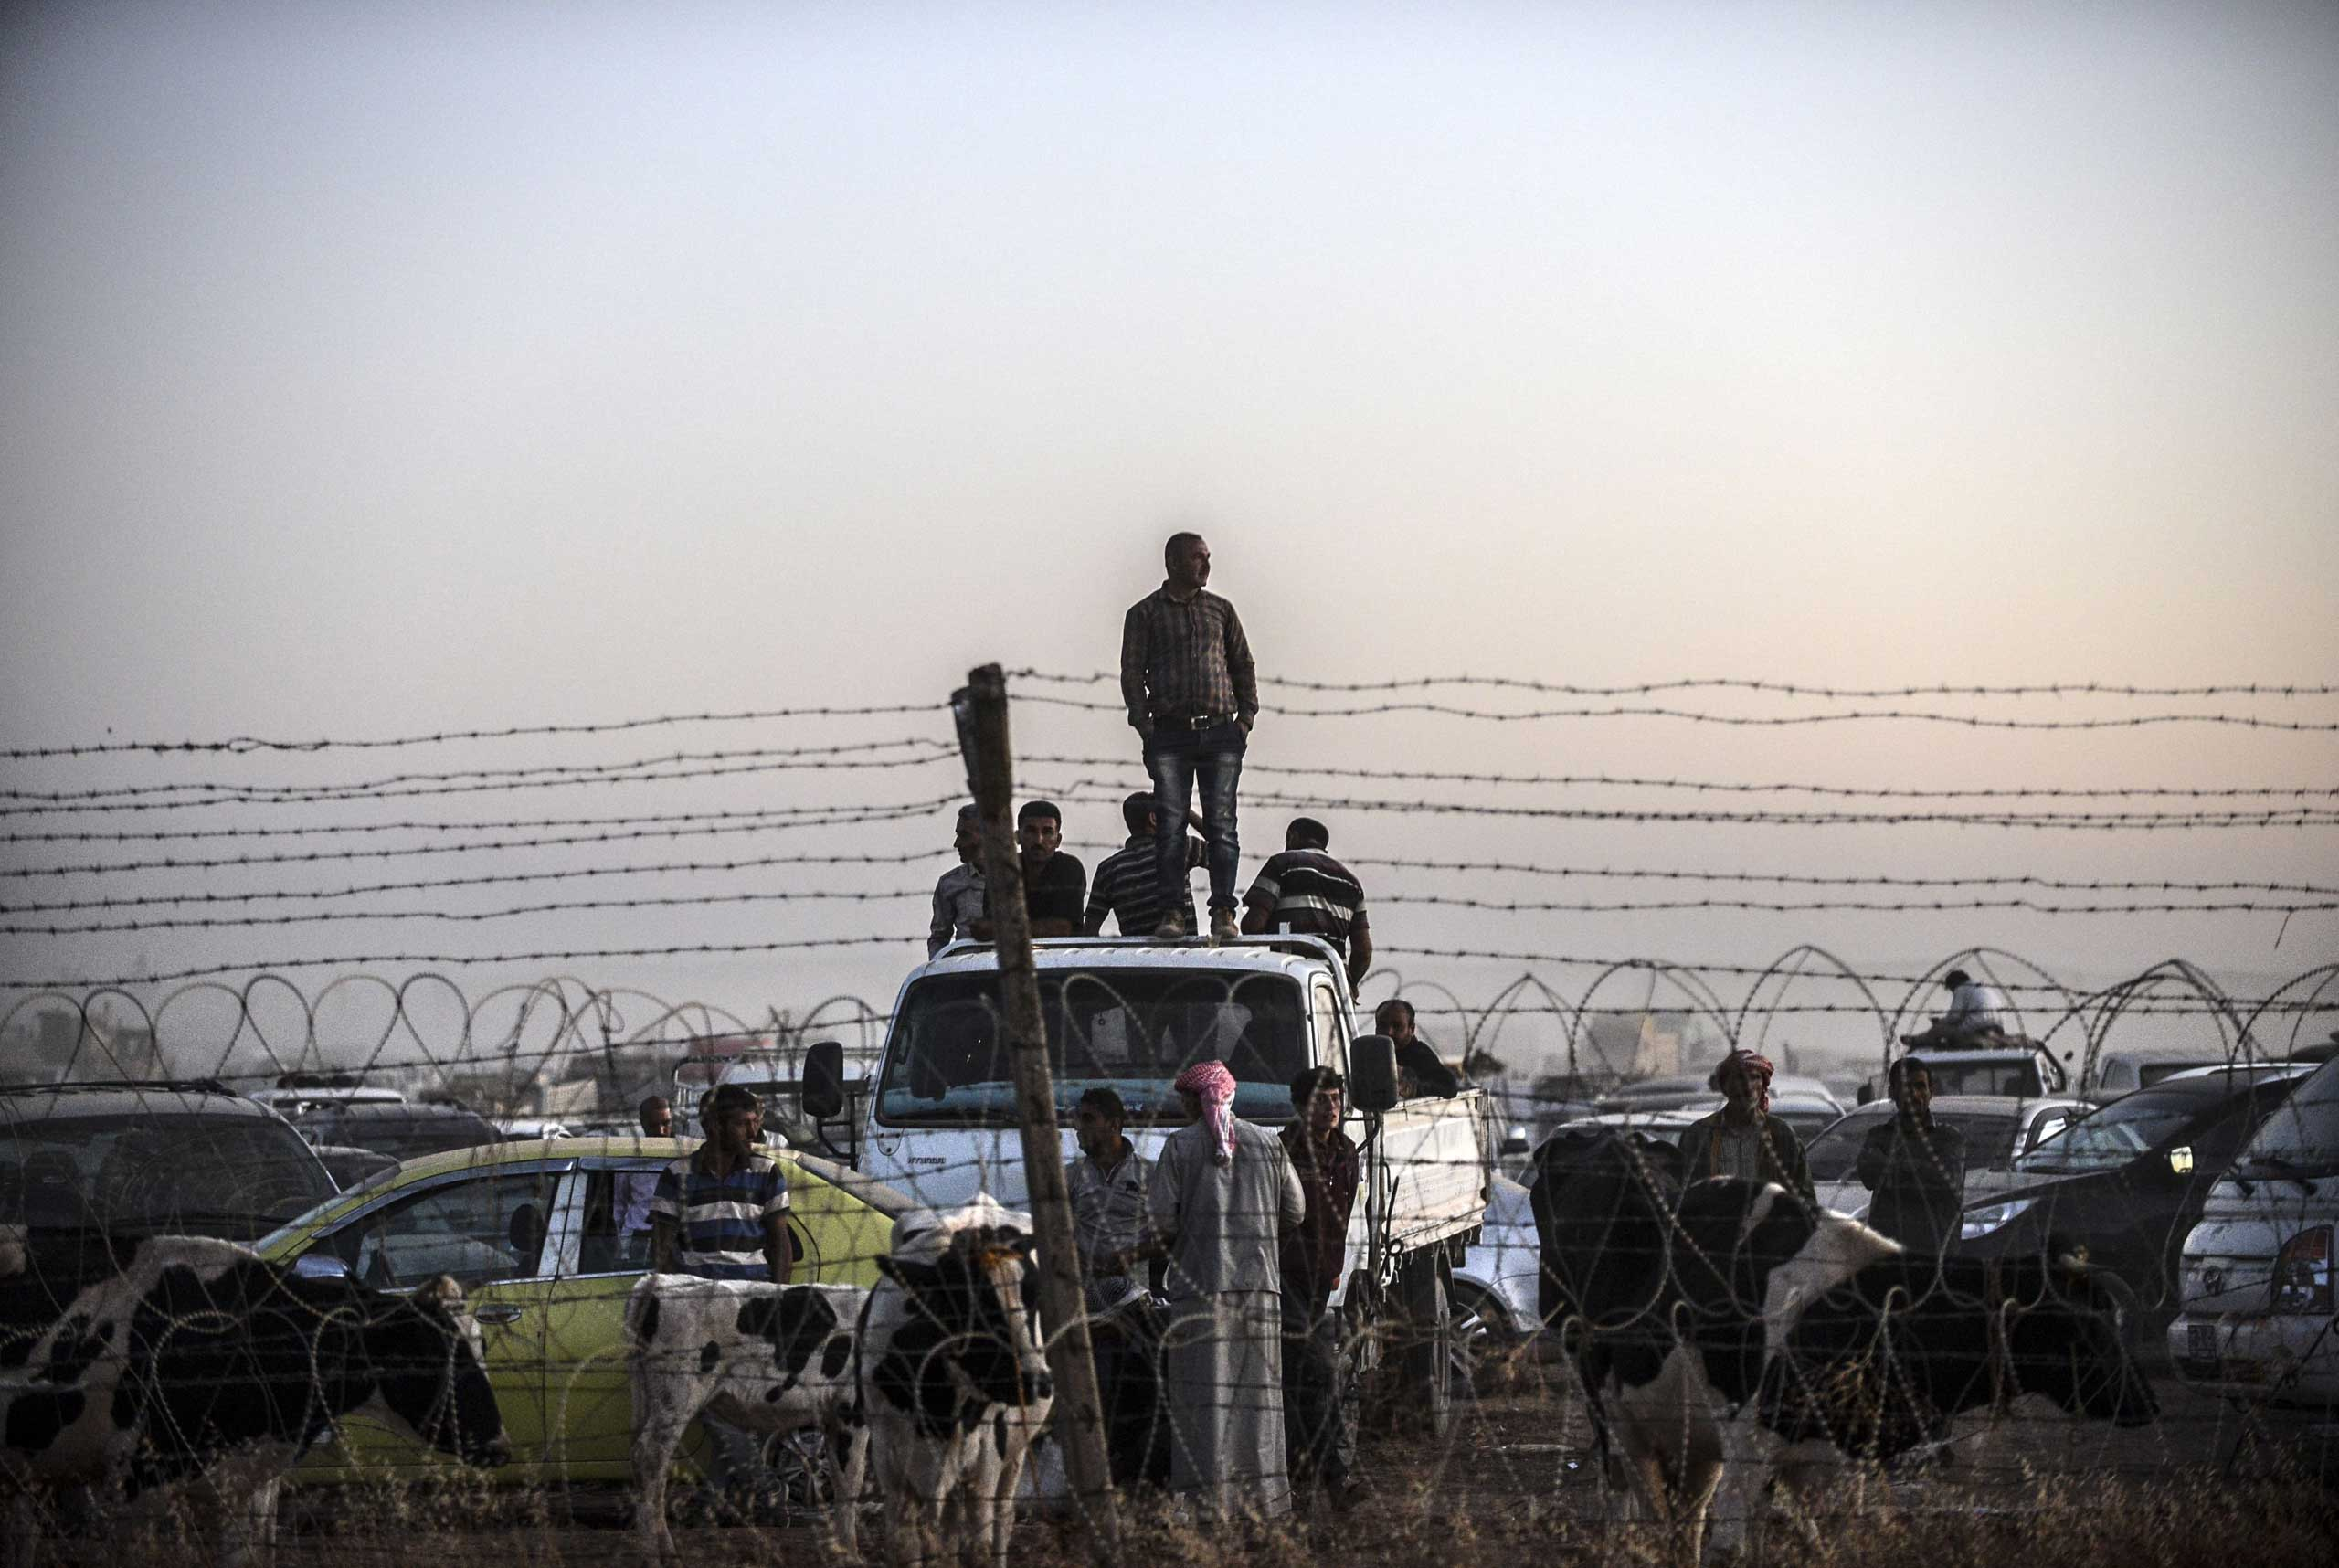 Syrian Kurds wait next to their animals as they stand behind a fence on the Syrian border in the southeastern town of Suruc in Sanliurfa province, on Sept. 21, 2014.